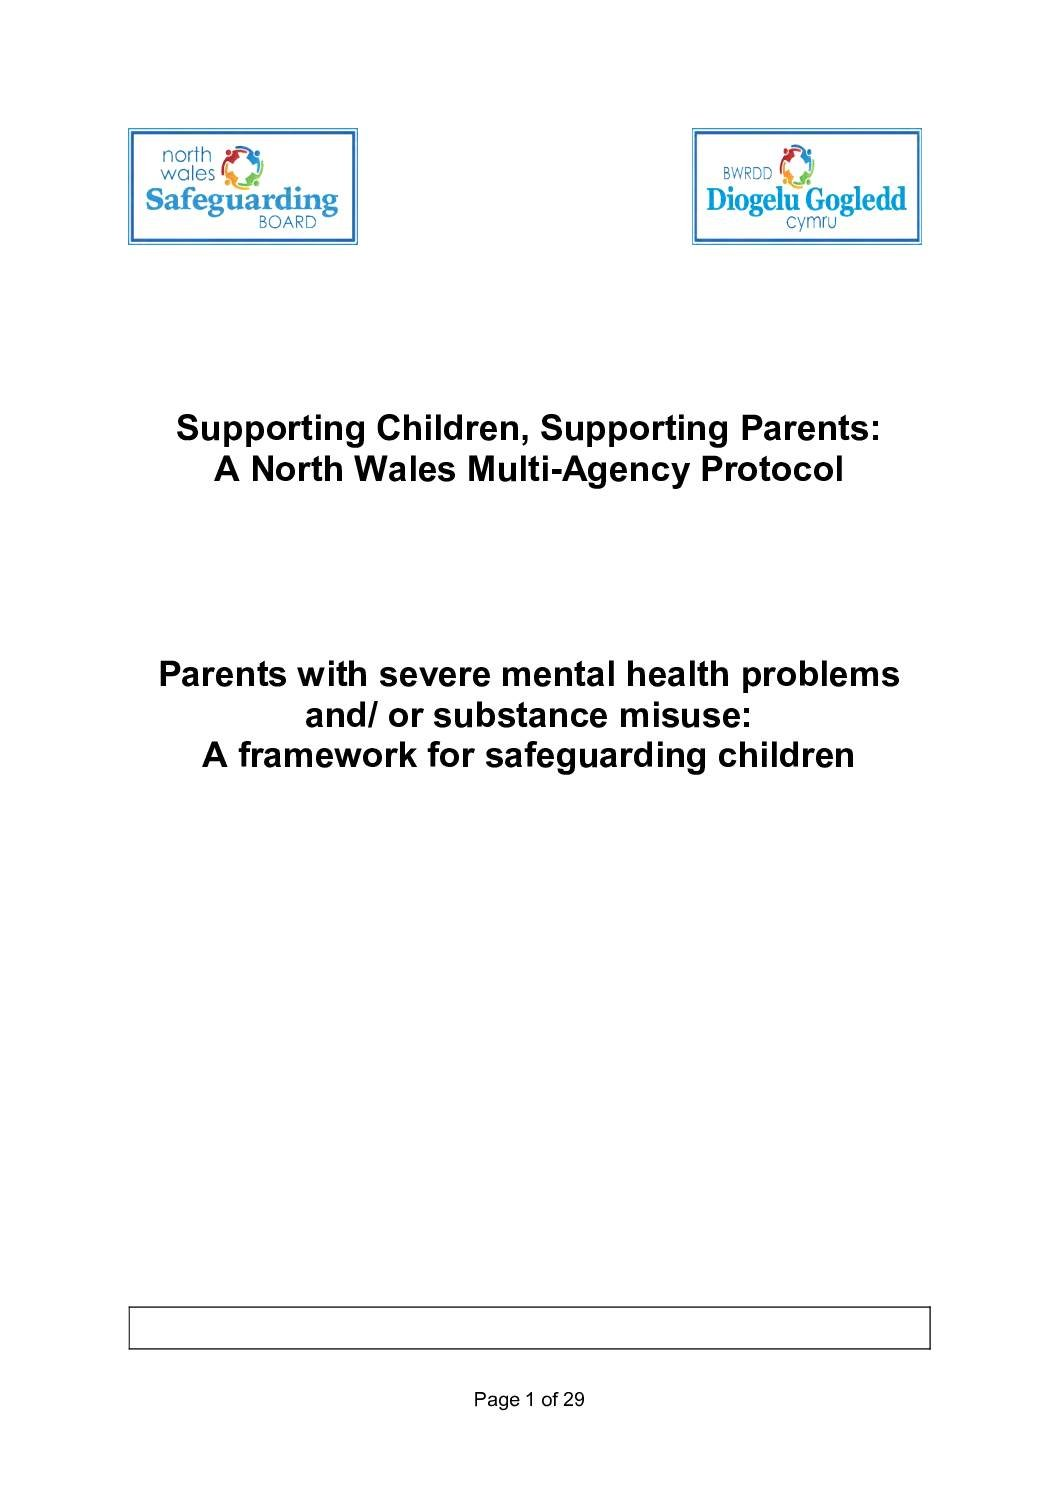 Supporting Children, Supporting Parents: A North Wales Protocol